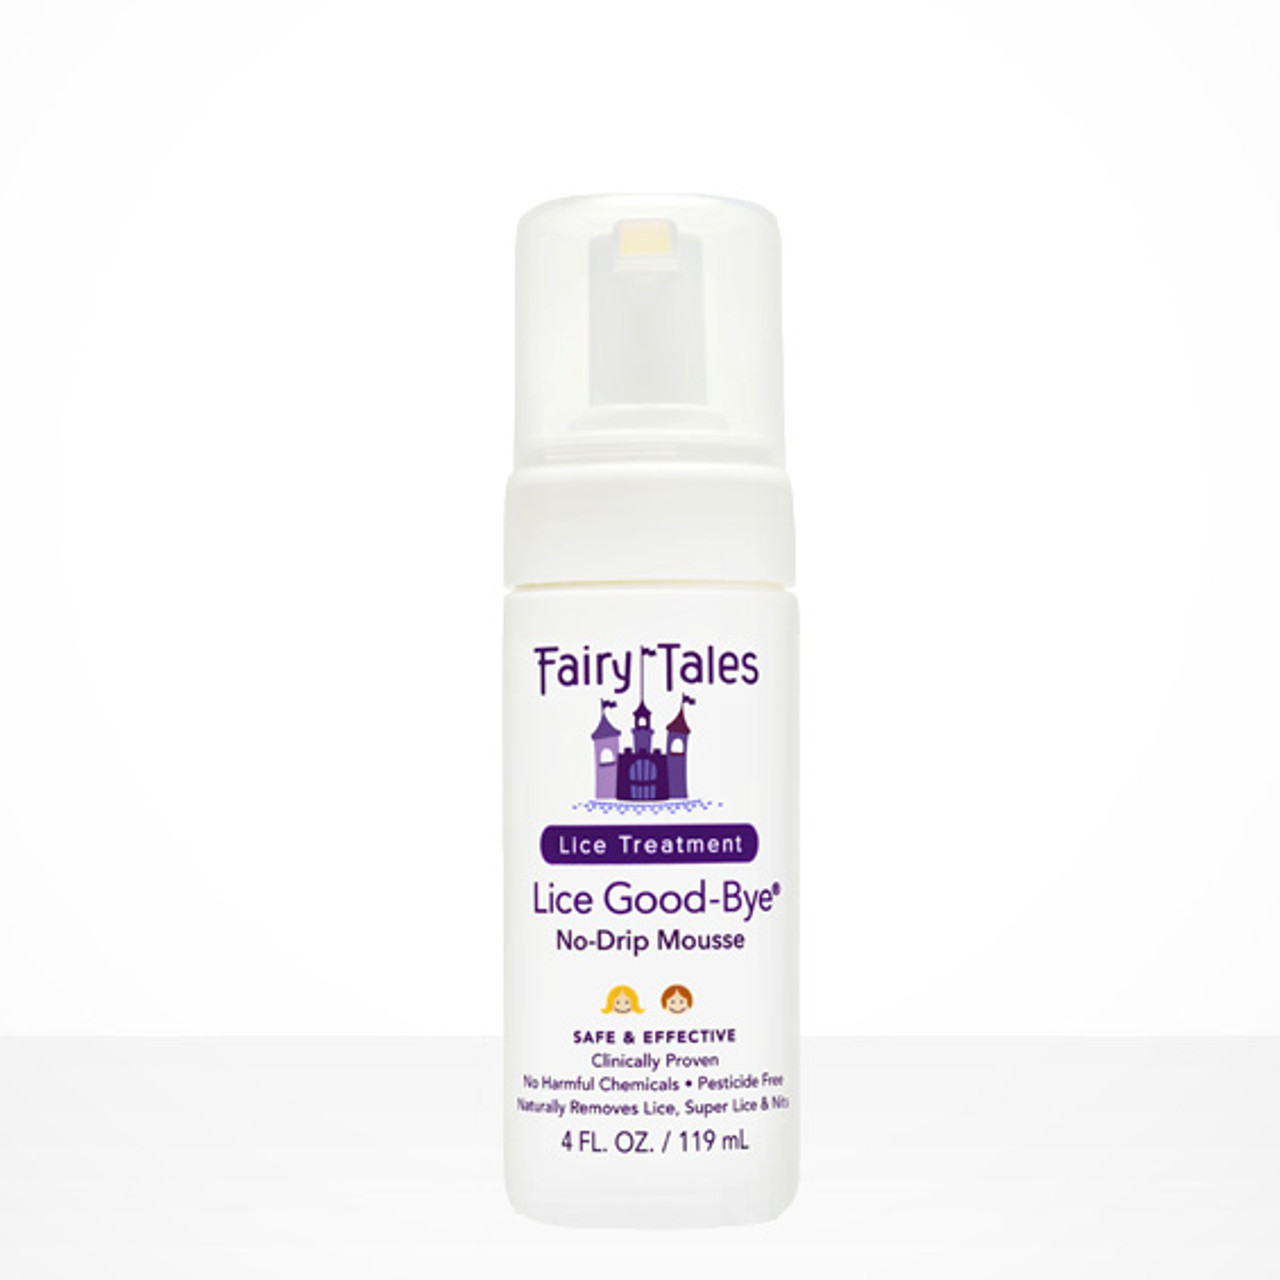 Fairy Tales Lice Good-Bye With Comb